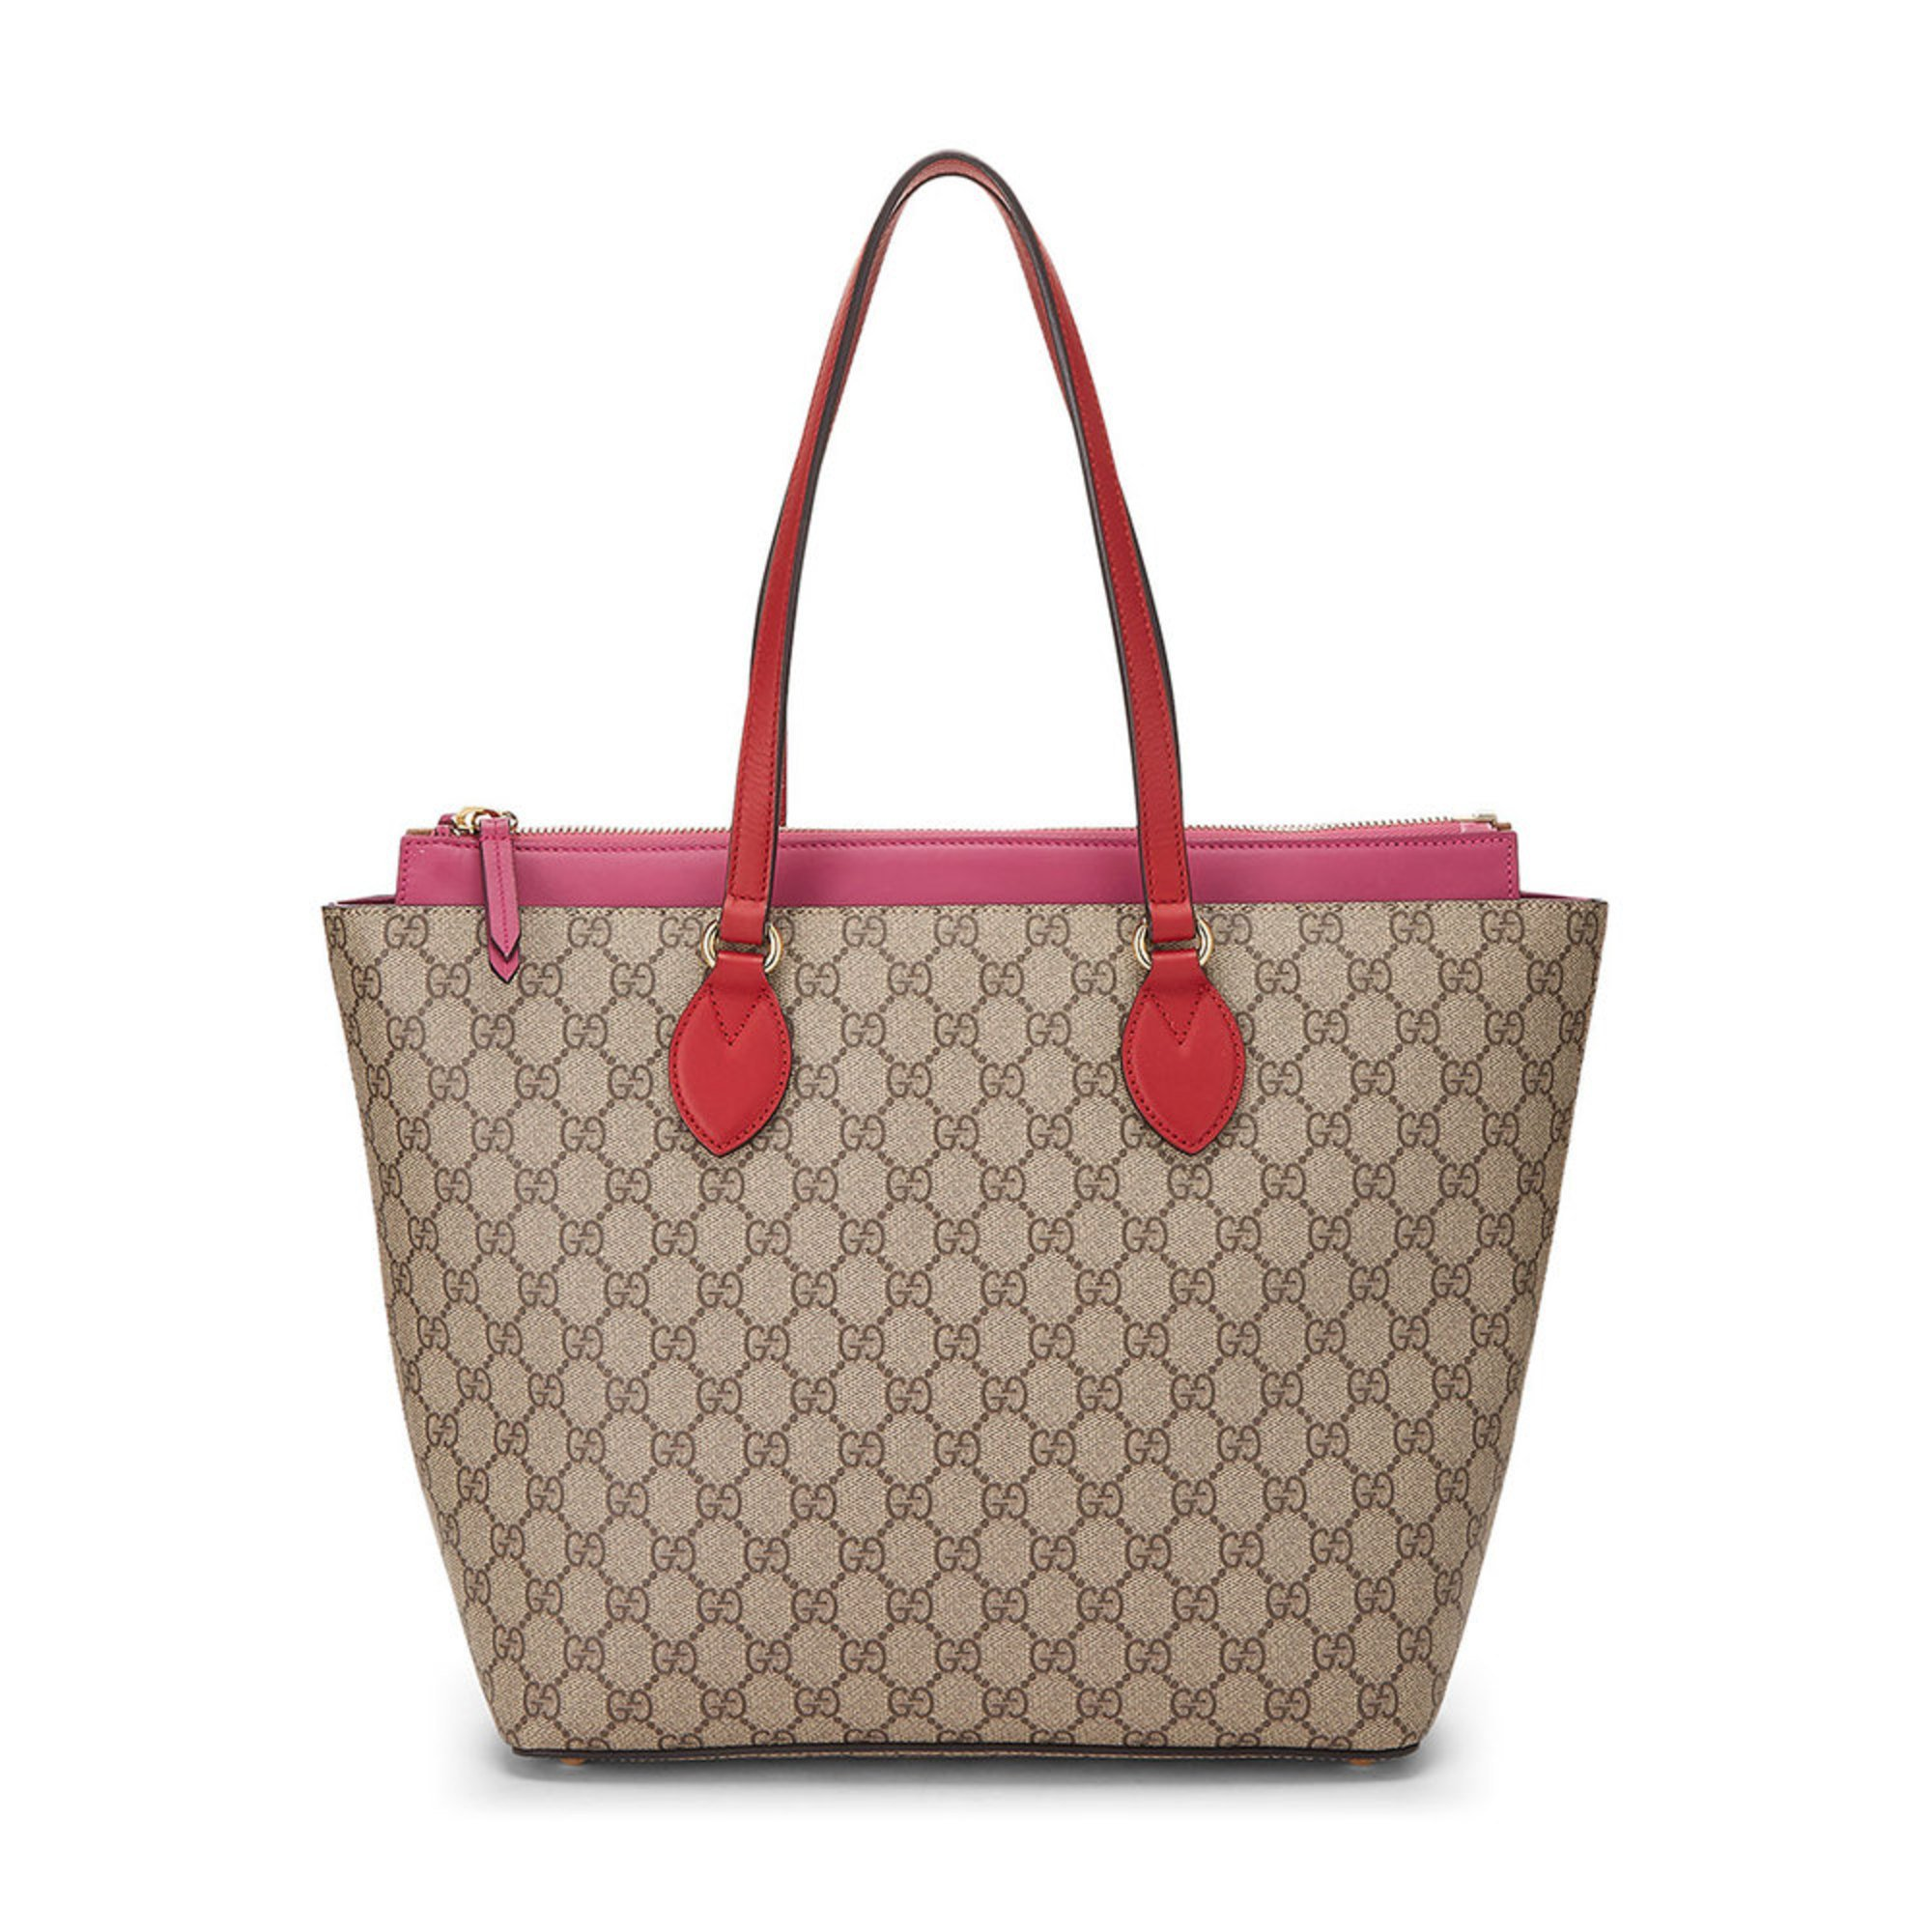 Gucci Pink Coasted Canvas 415721 Handbags Accessories